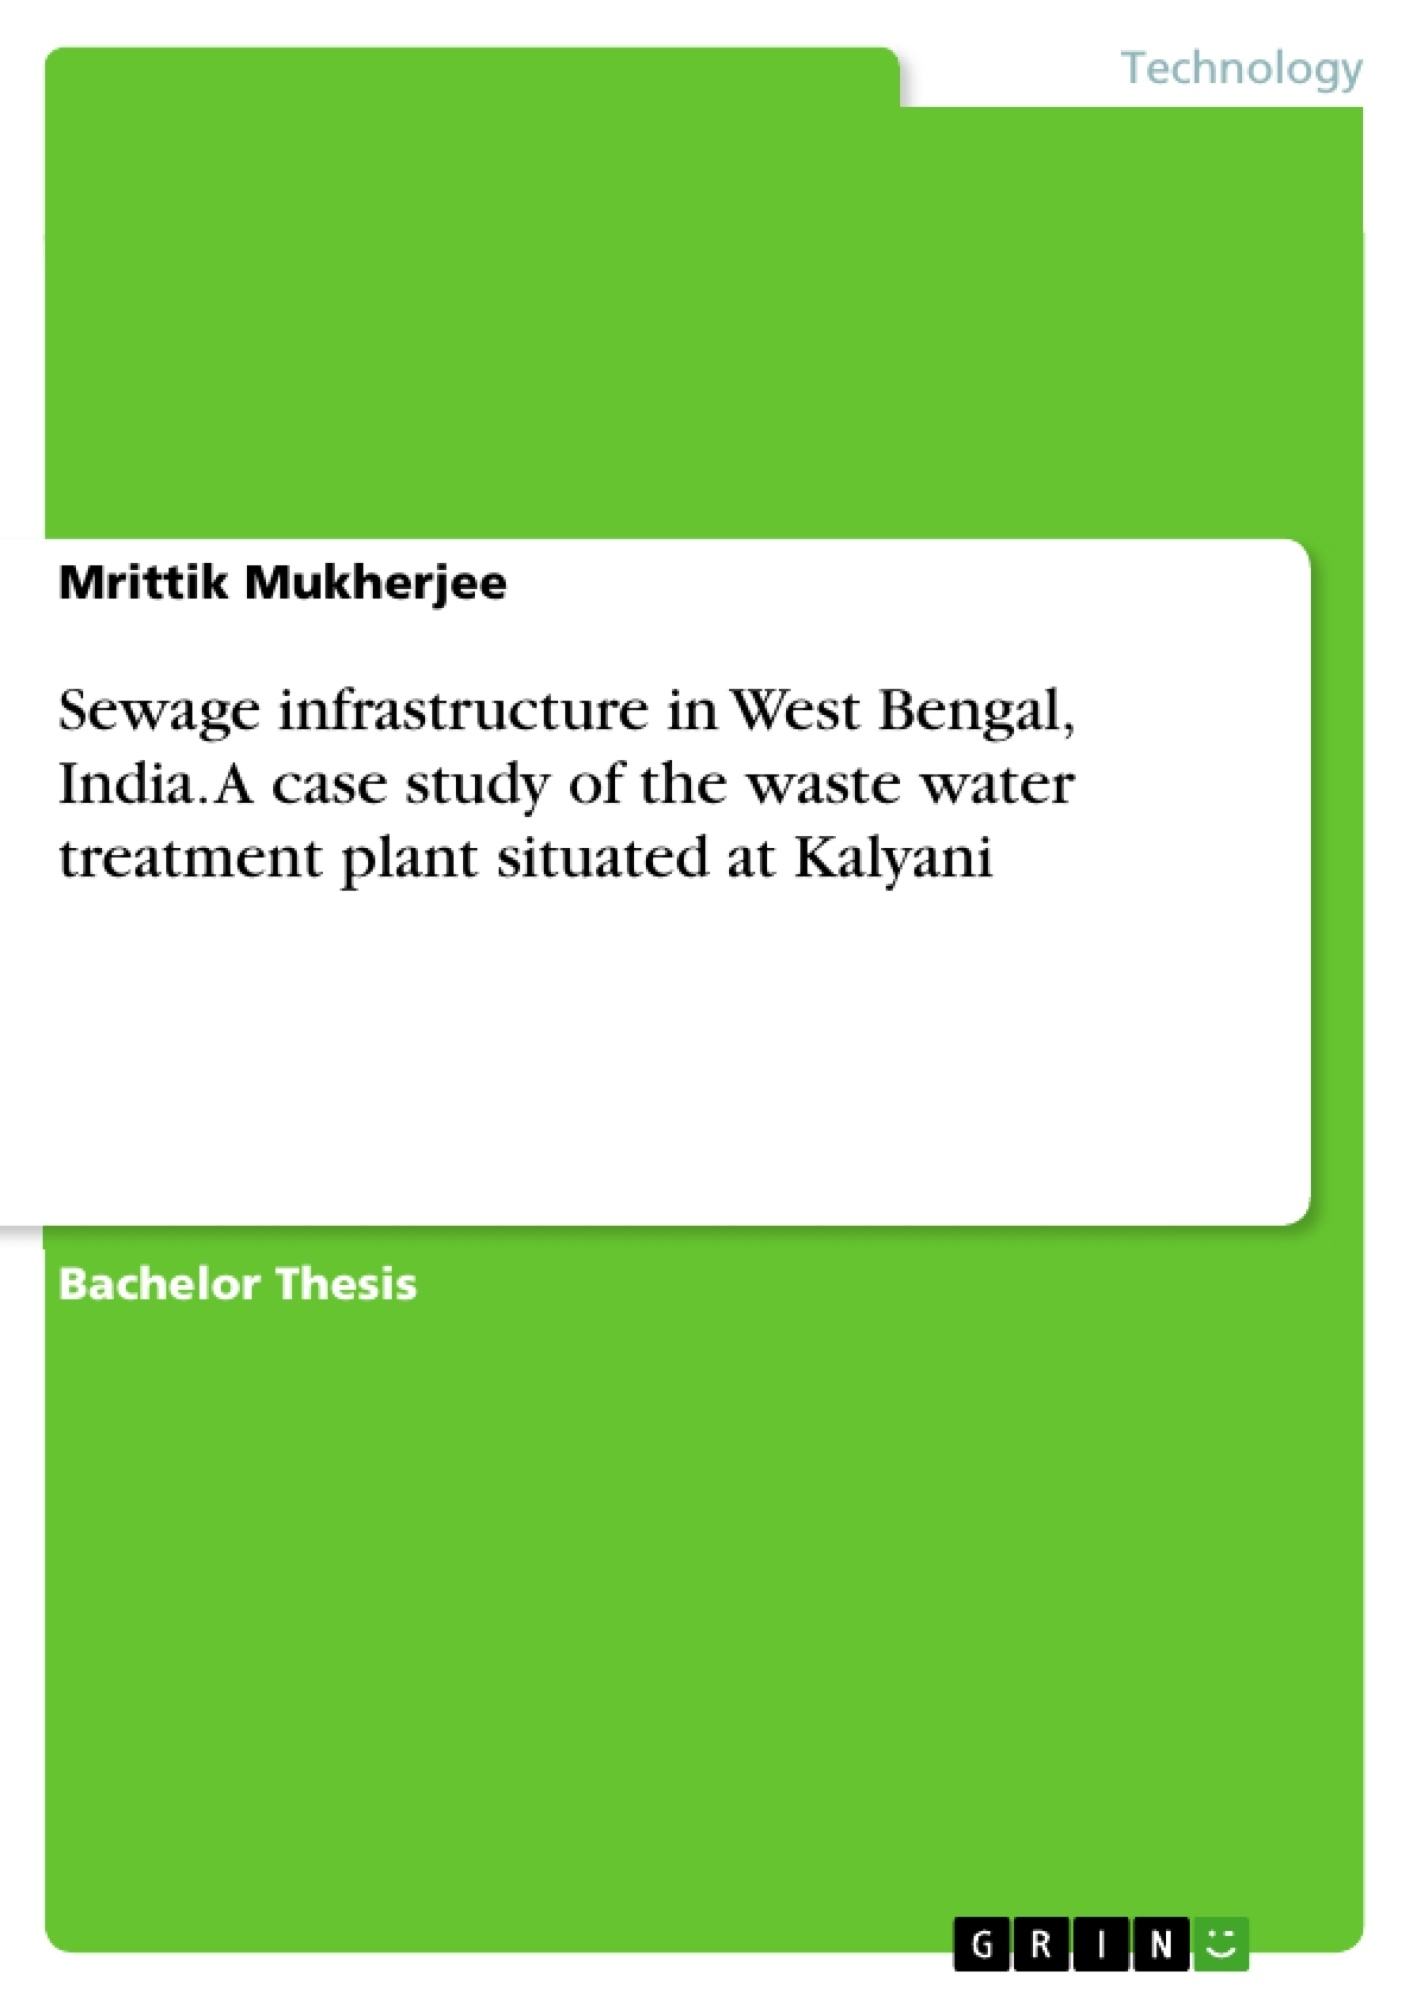 Title: Sewage infrastructure in West Bengal, India. A case study of the waste water treatment plant situated at Kalyani